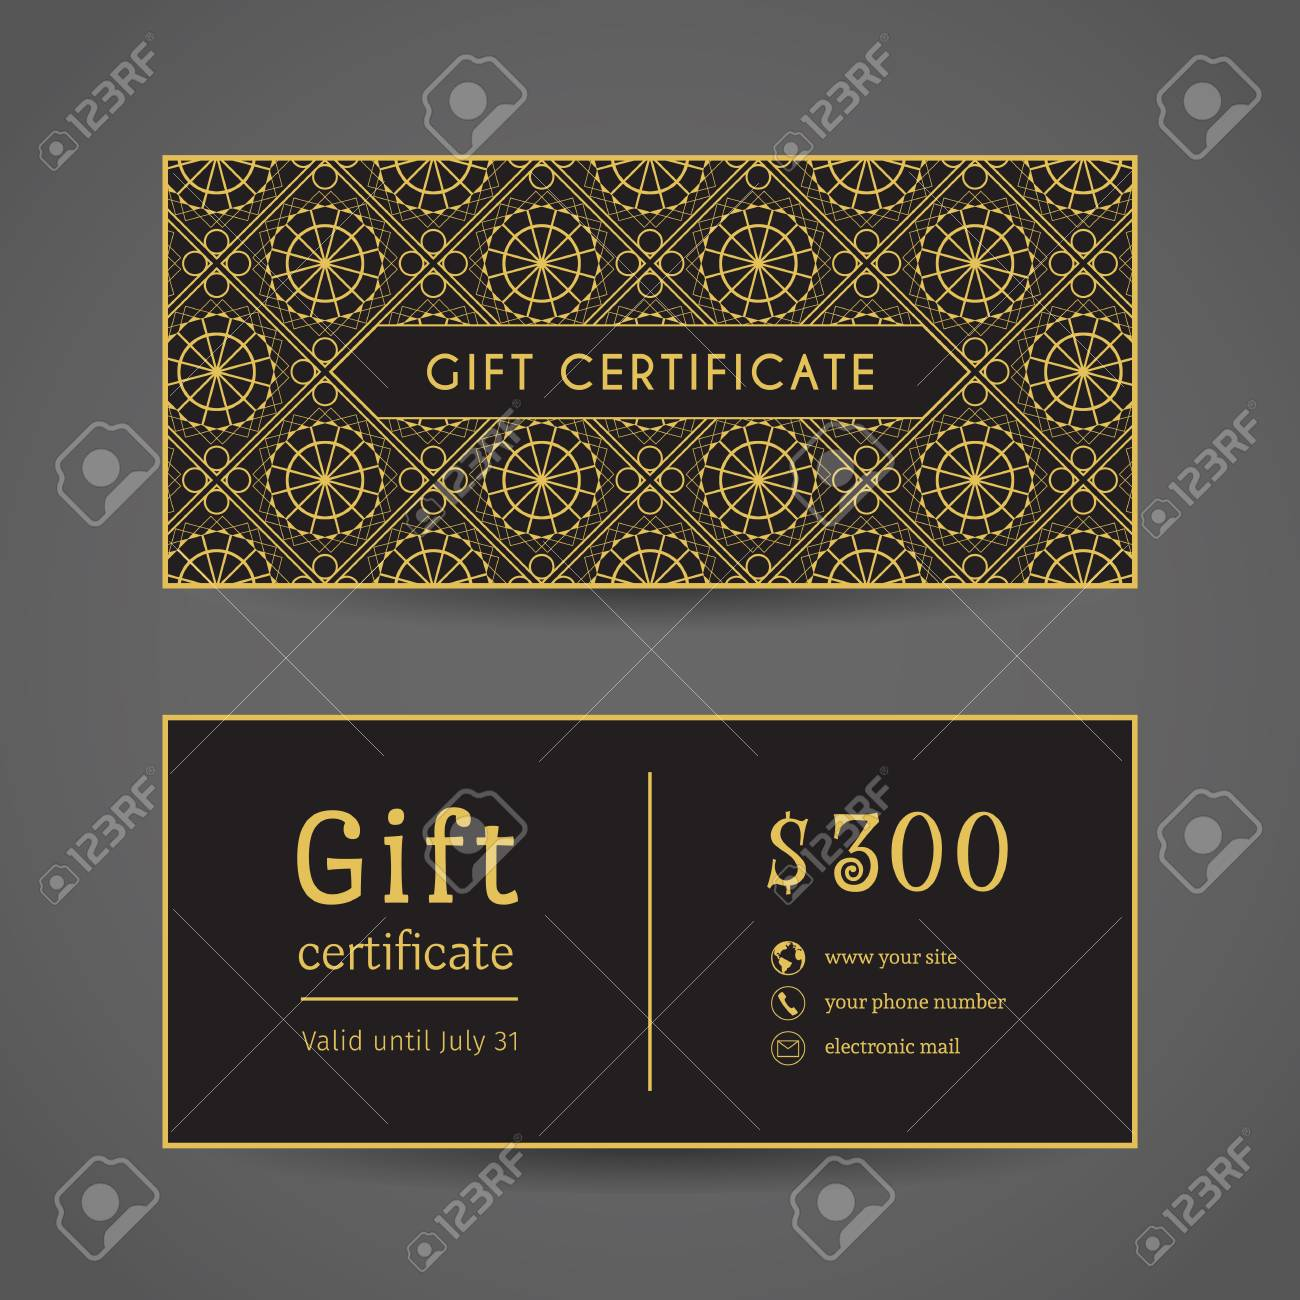 vintage ornamental gift certificate editable template include